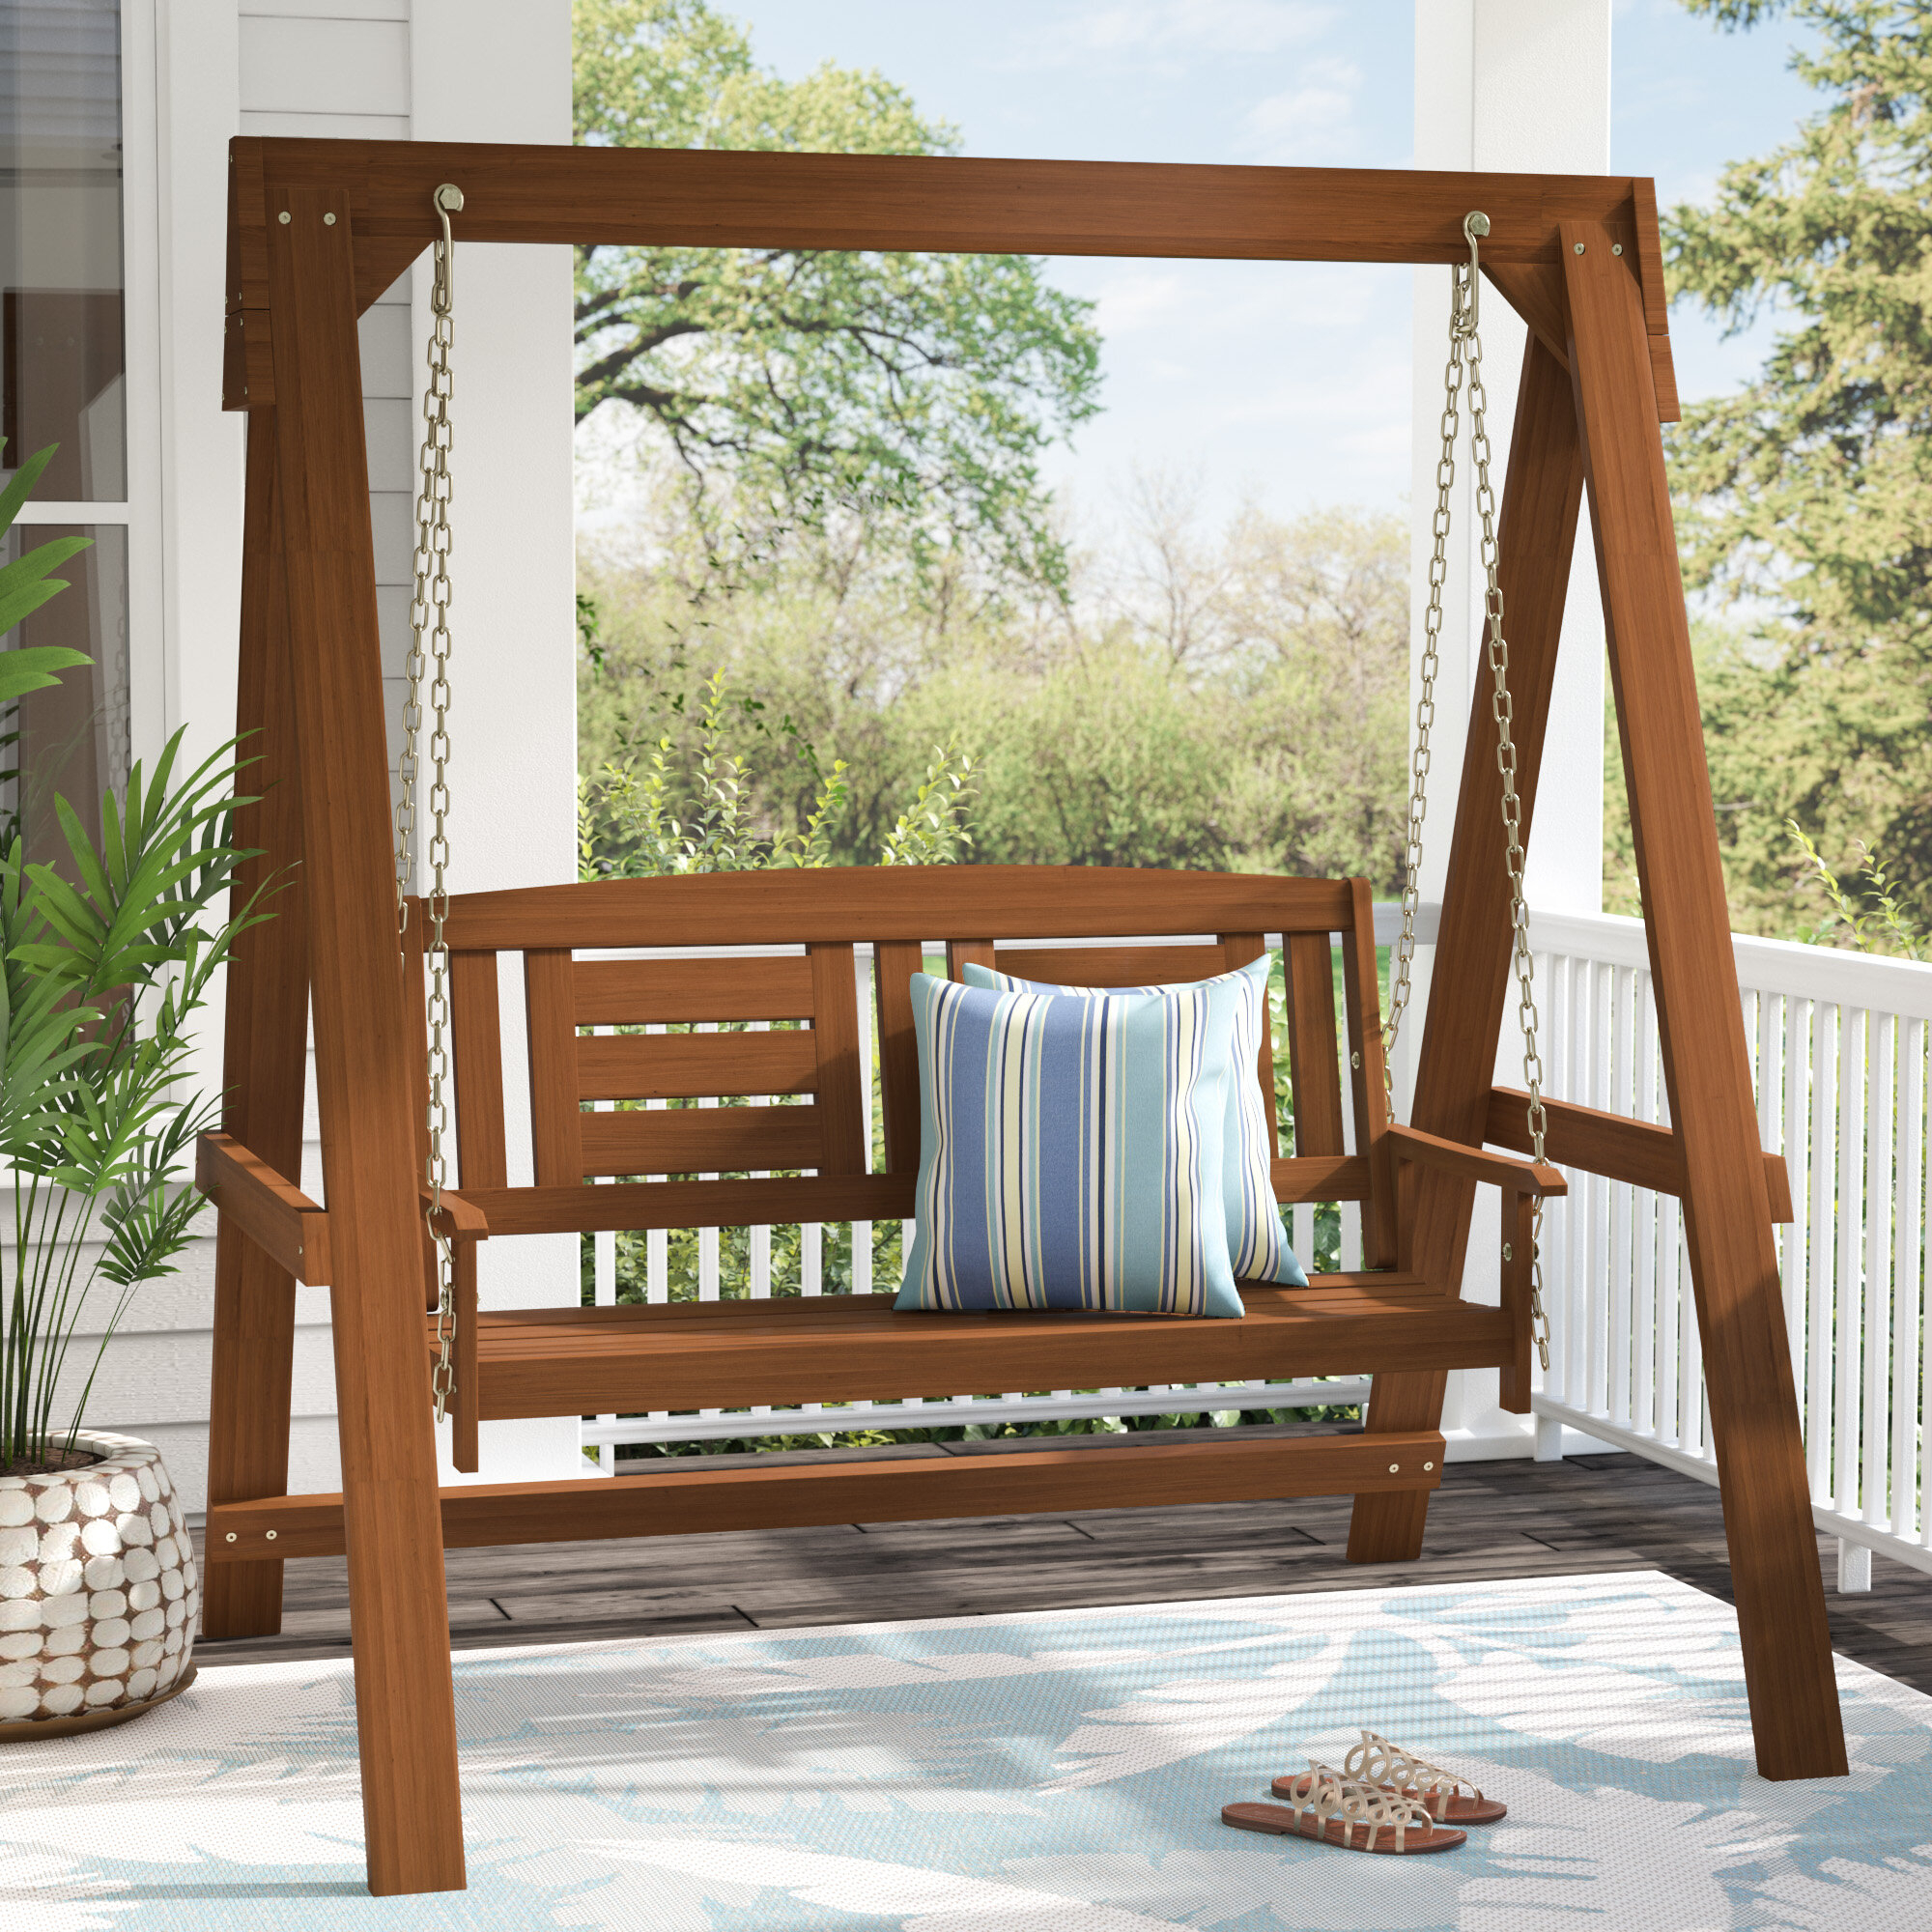 Langley Street Arianna Hardwood Hanging Porch Swing With For Hardwood Hanging Porch Swings With Stand (View 9 of 25)